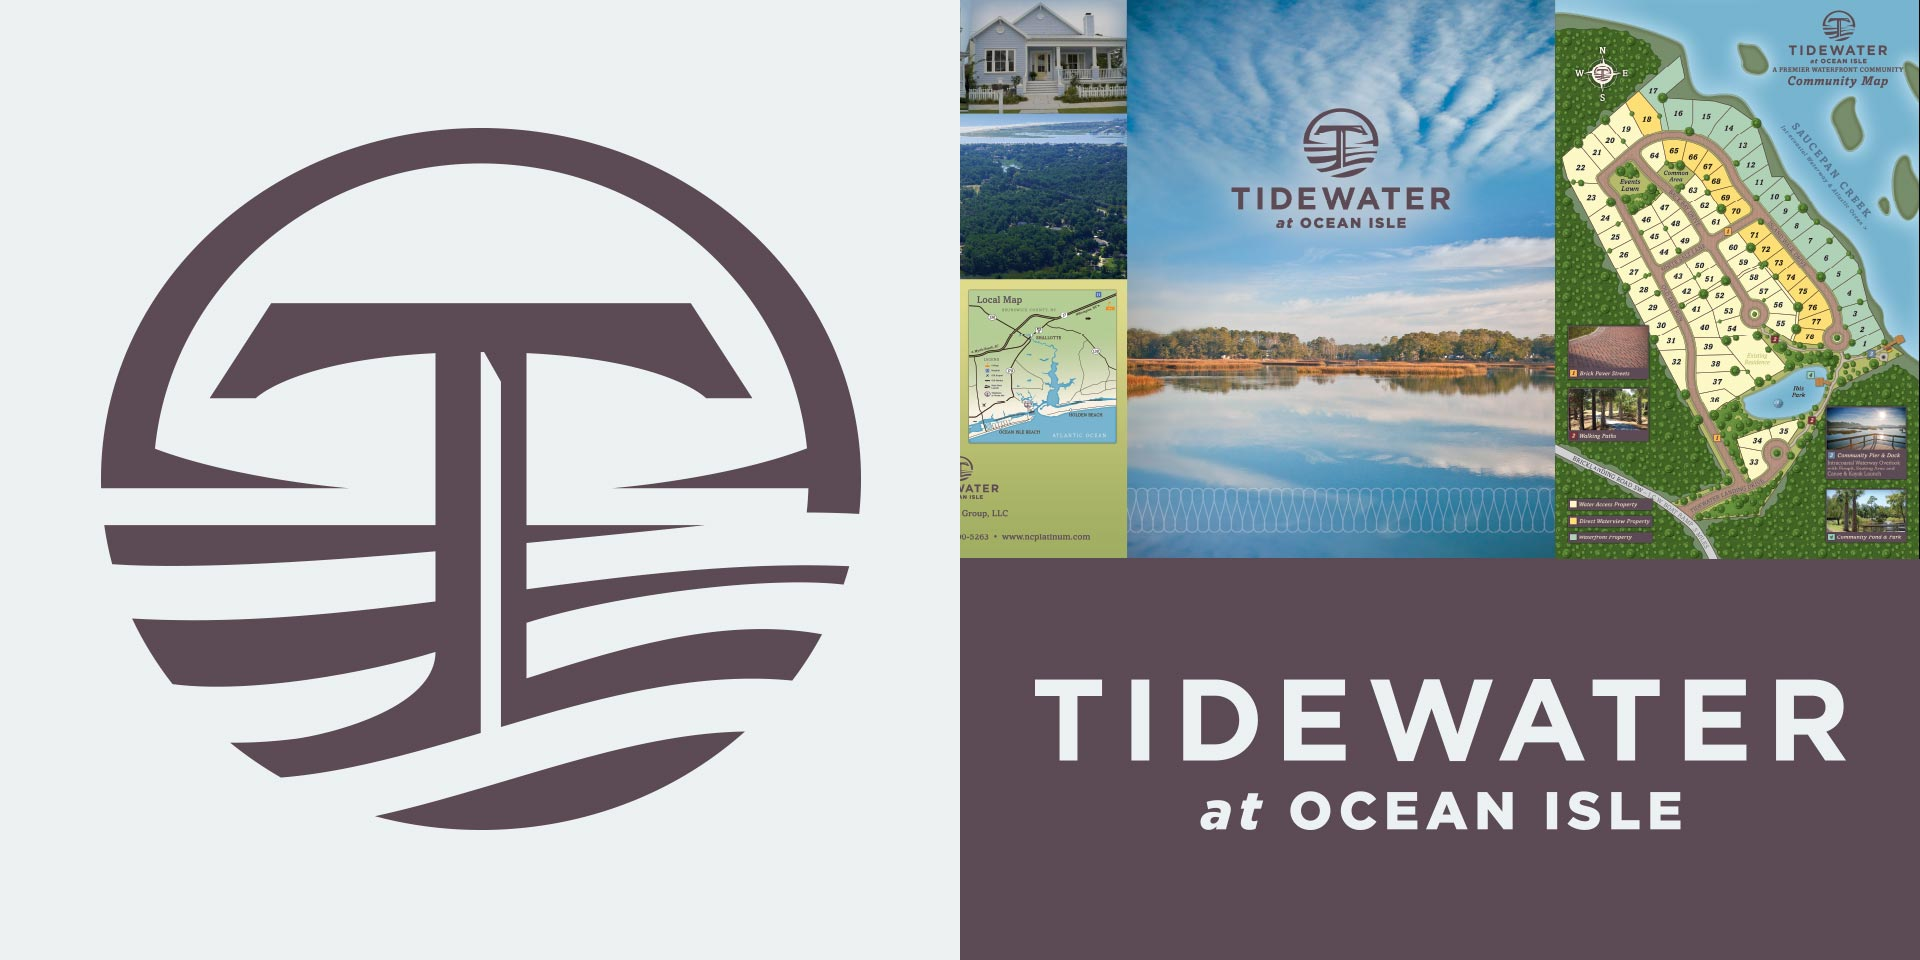 Tidewater Real Estate - Brand Identity by Springer Studios, Wilmington, NC